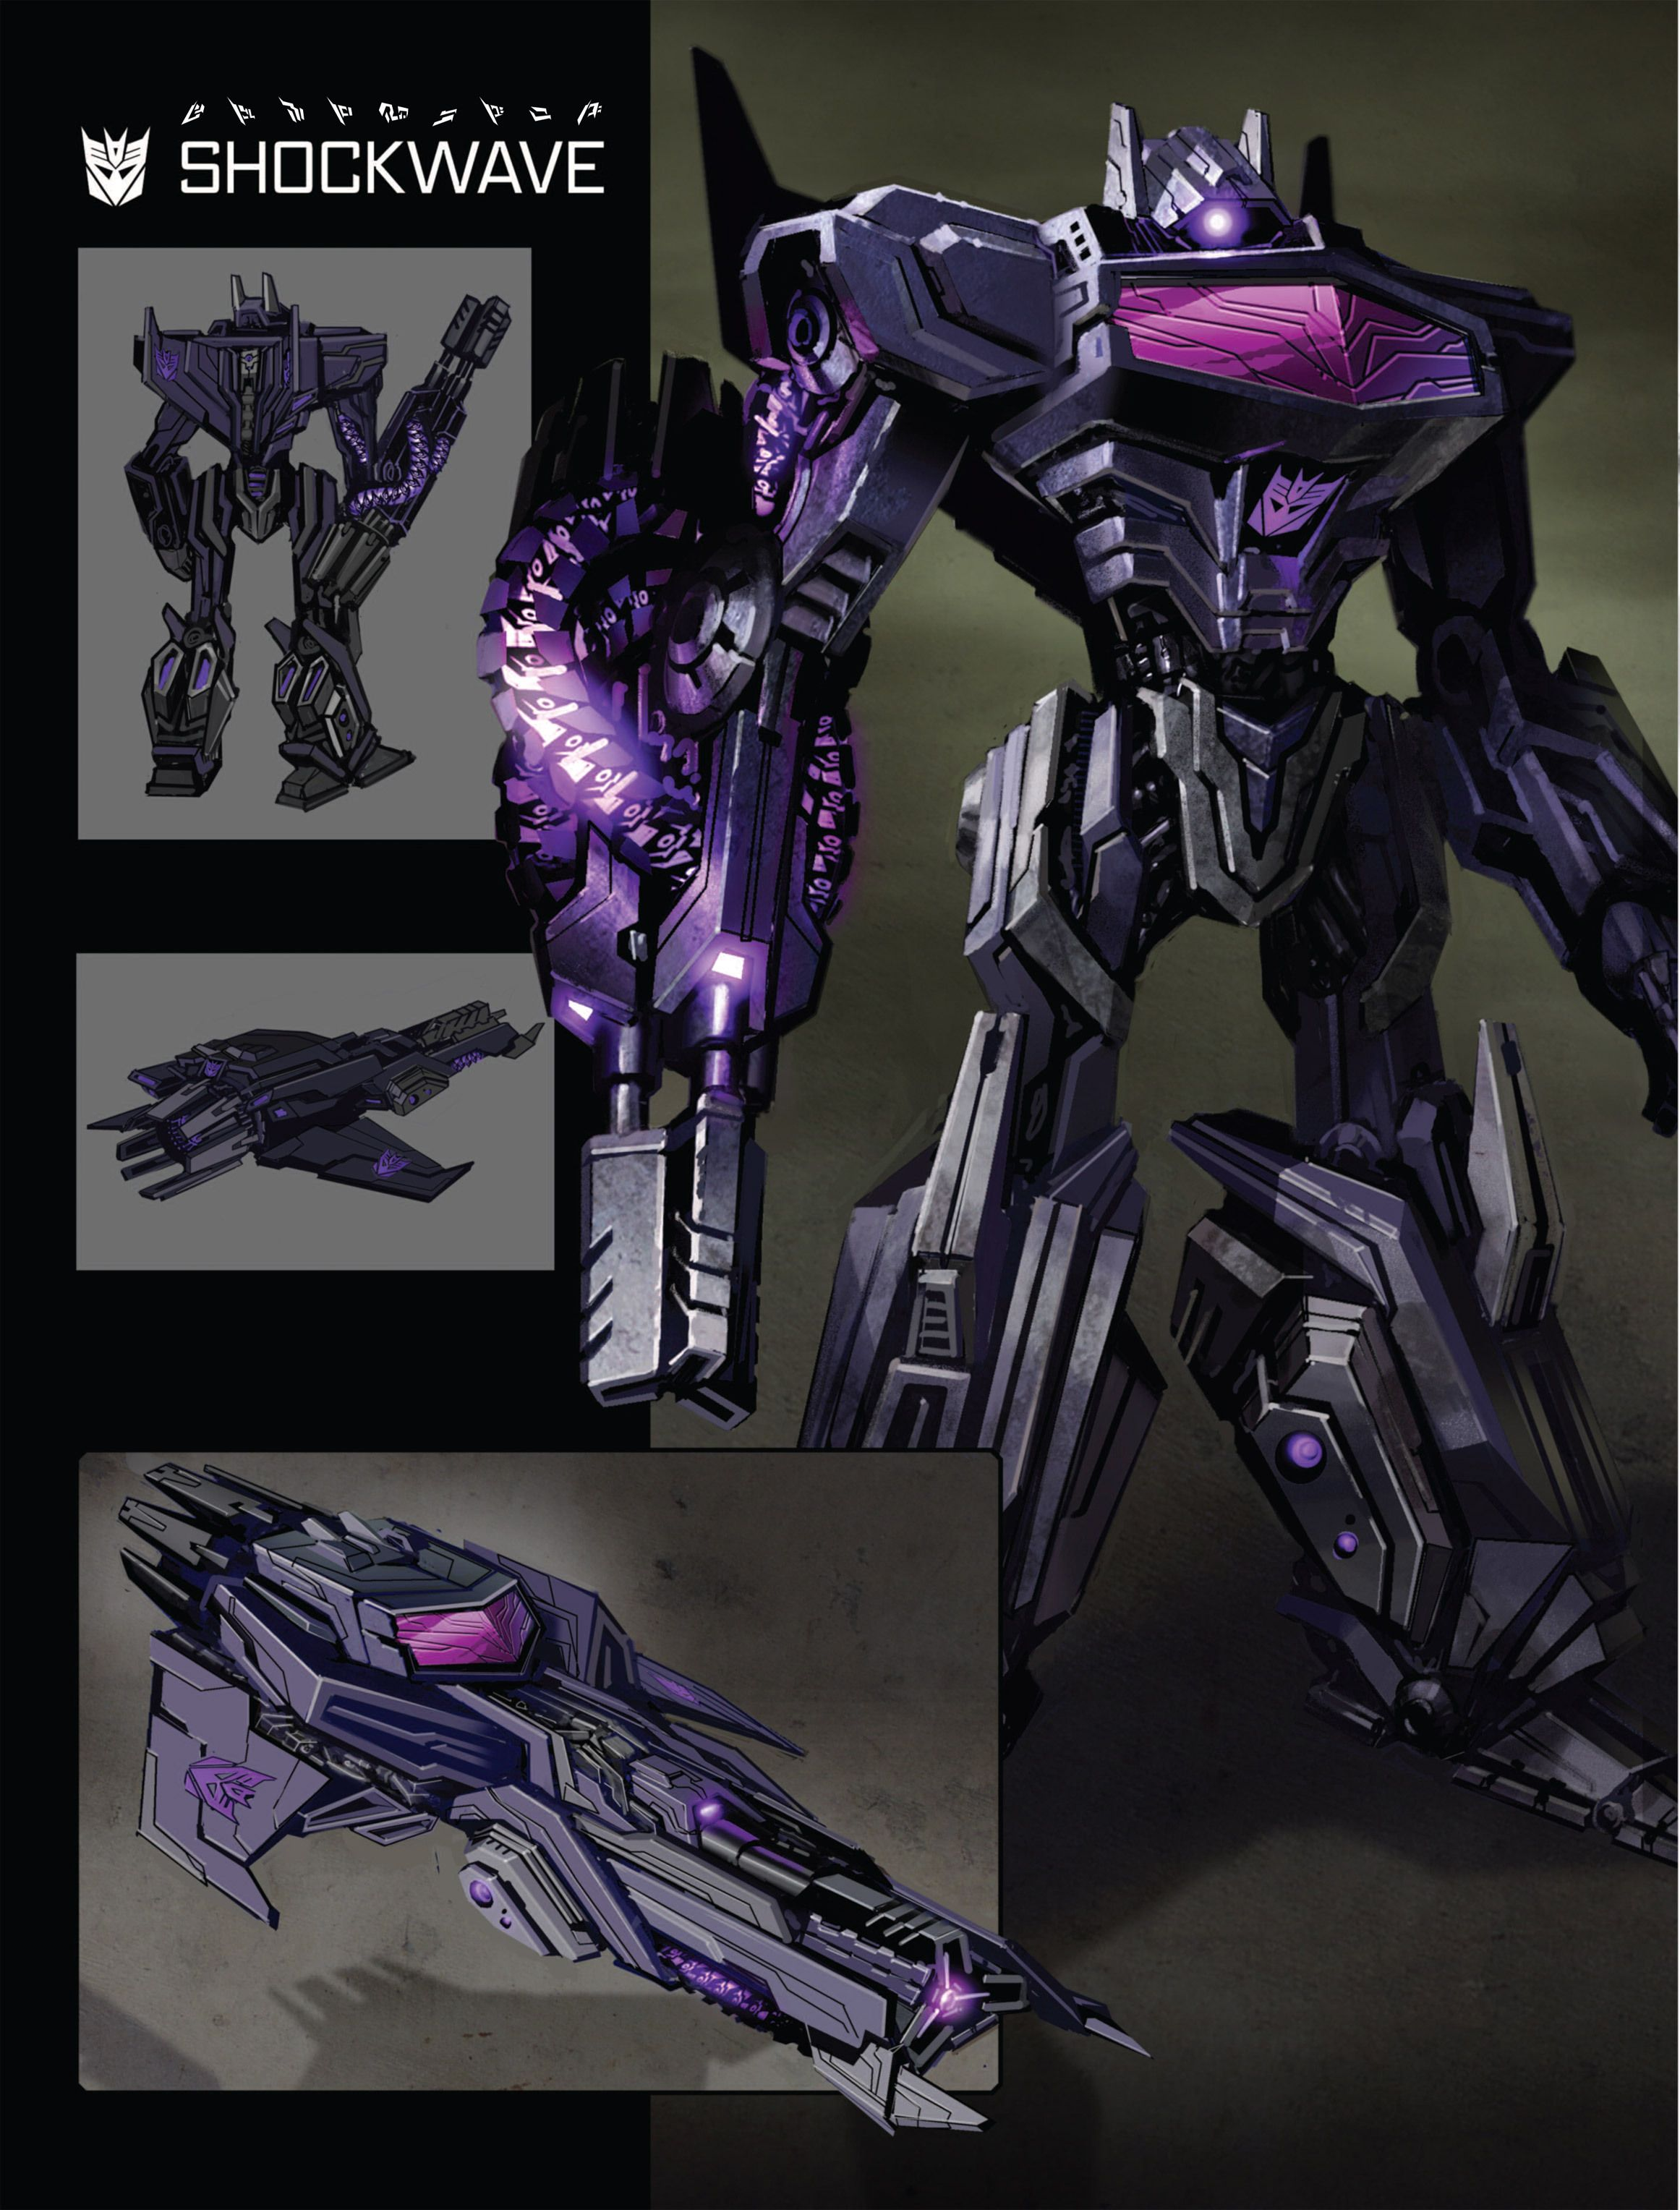 Art of Fall of Cybertron, Shockwave